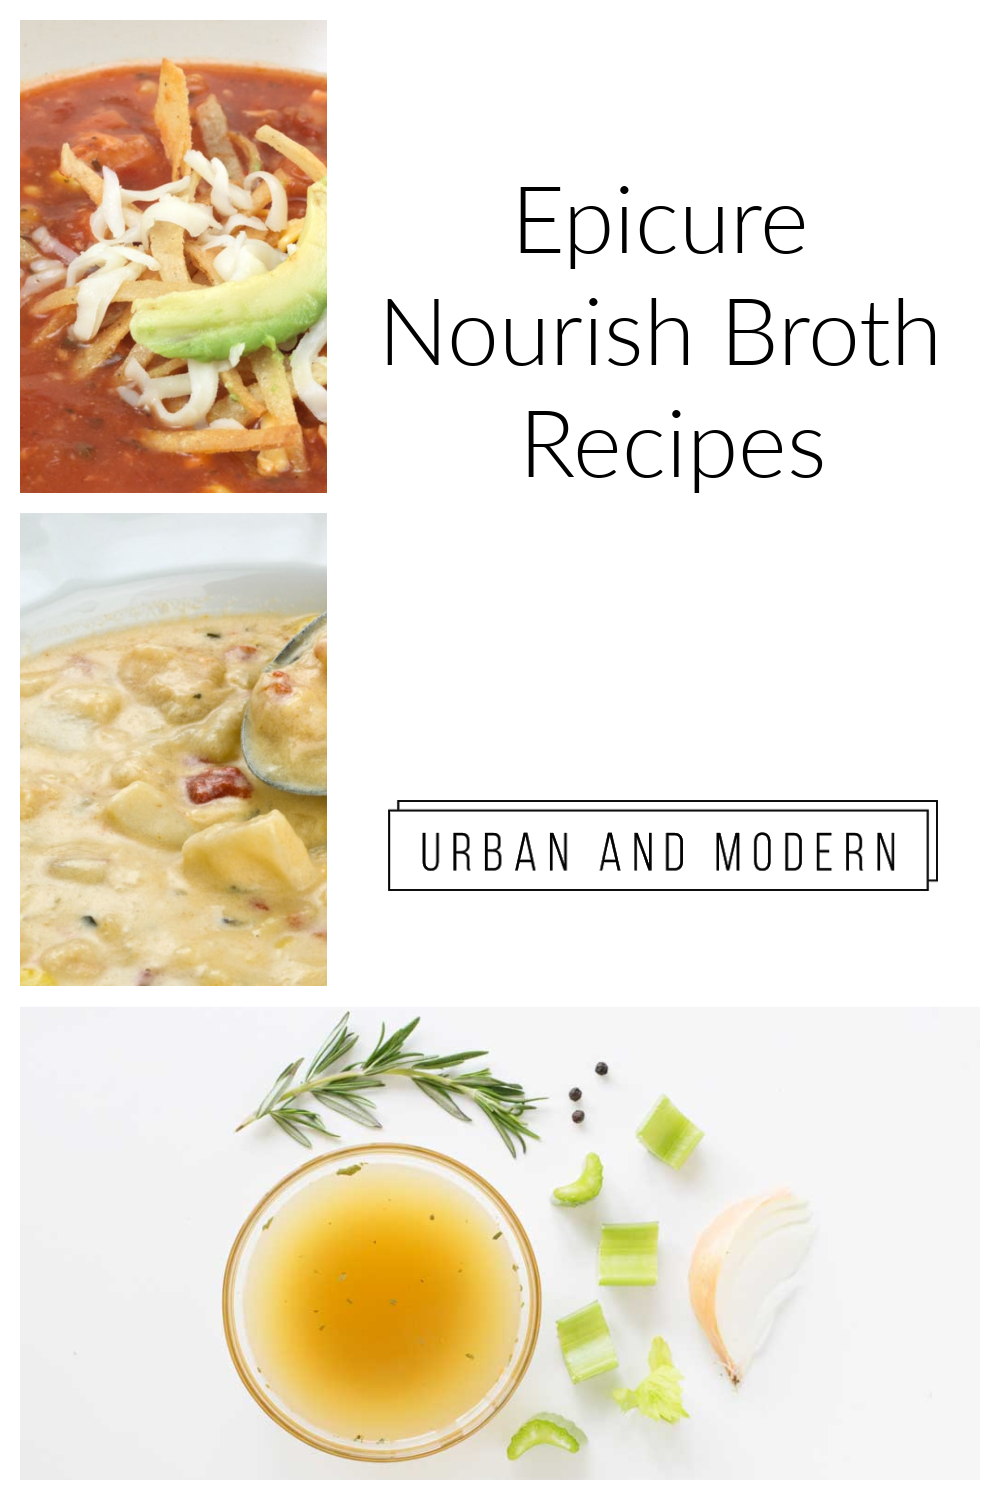 Epicure Nourish Broth